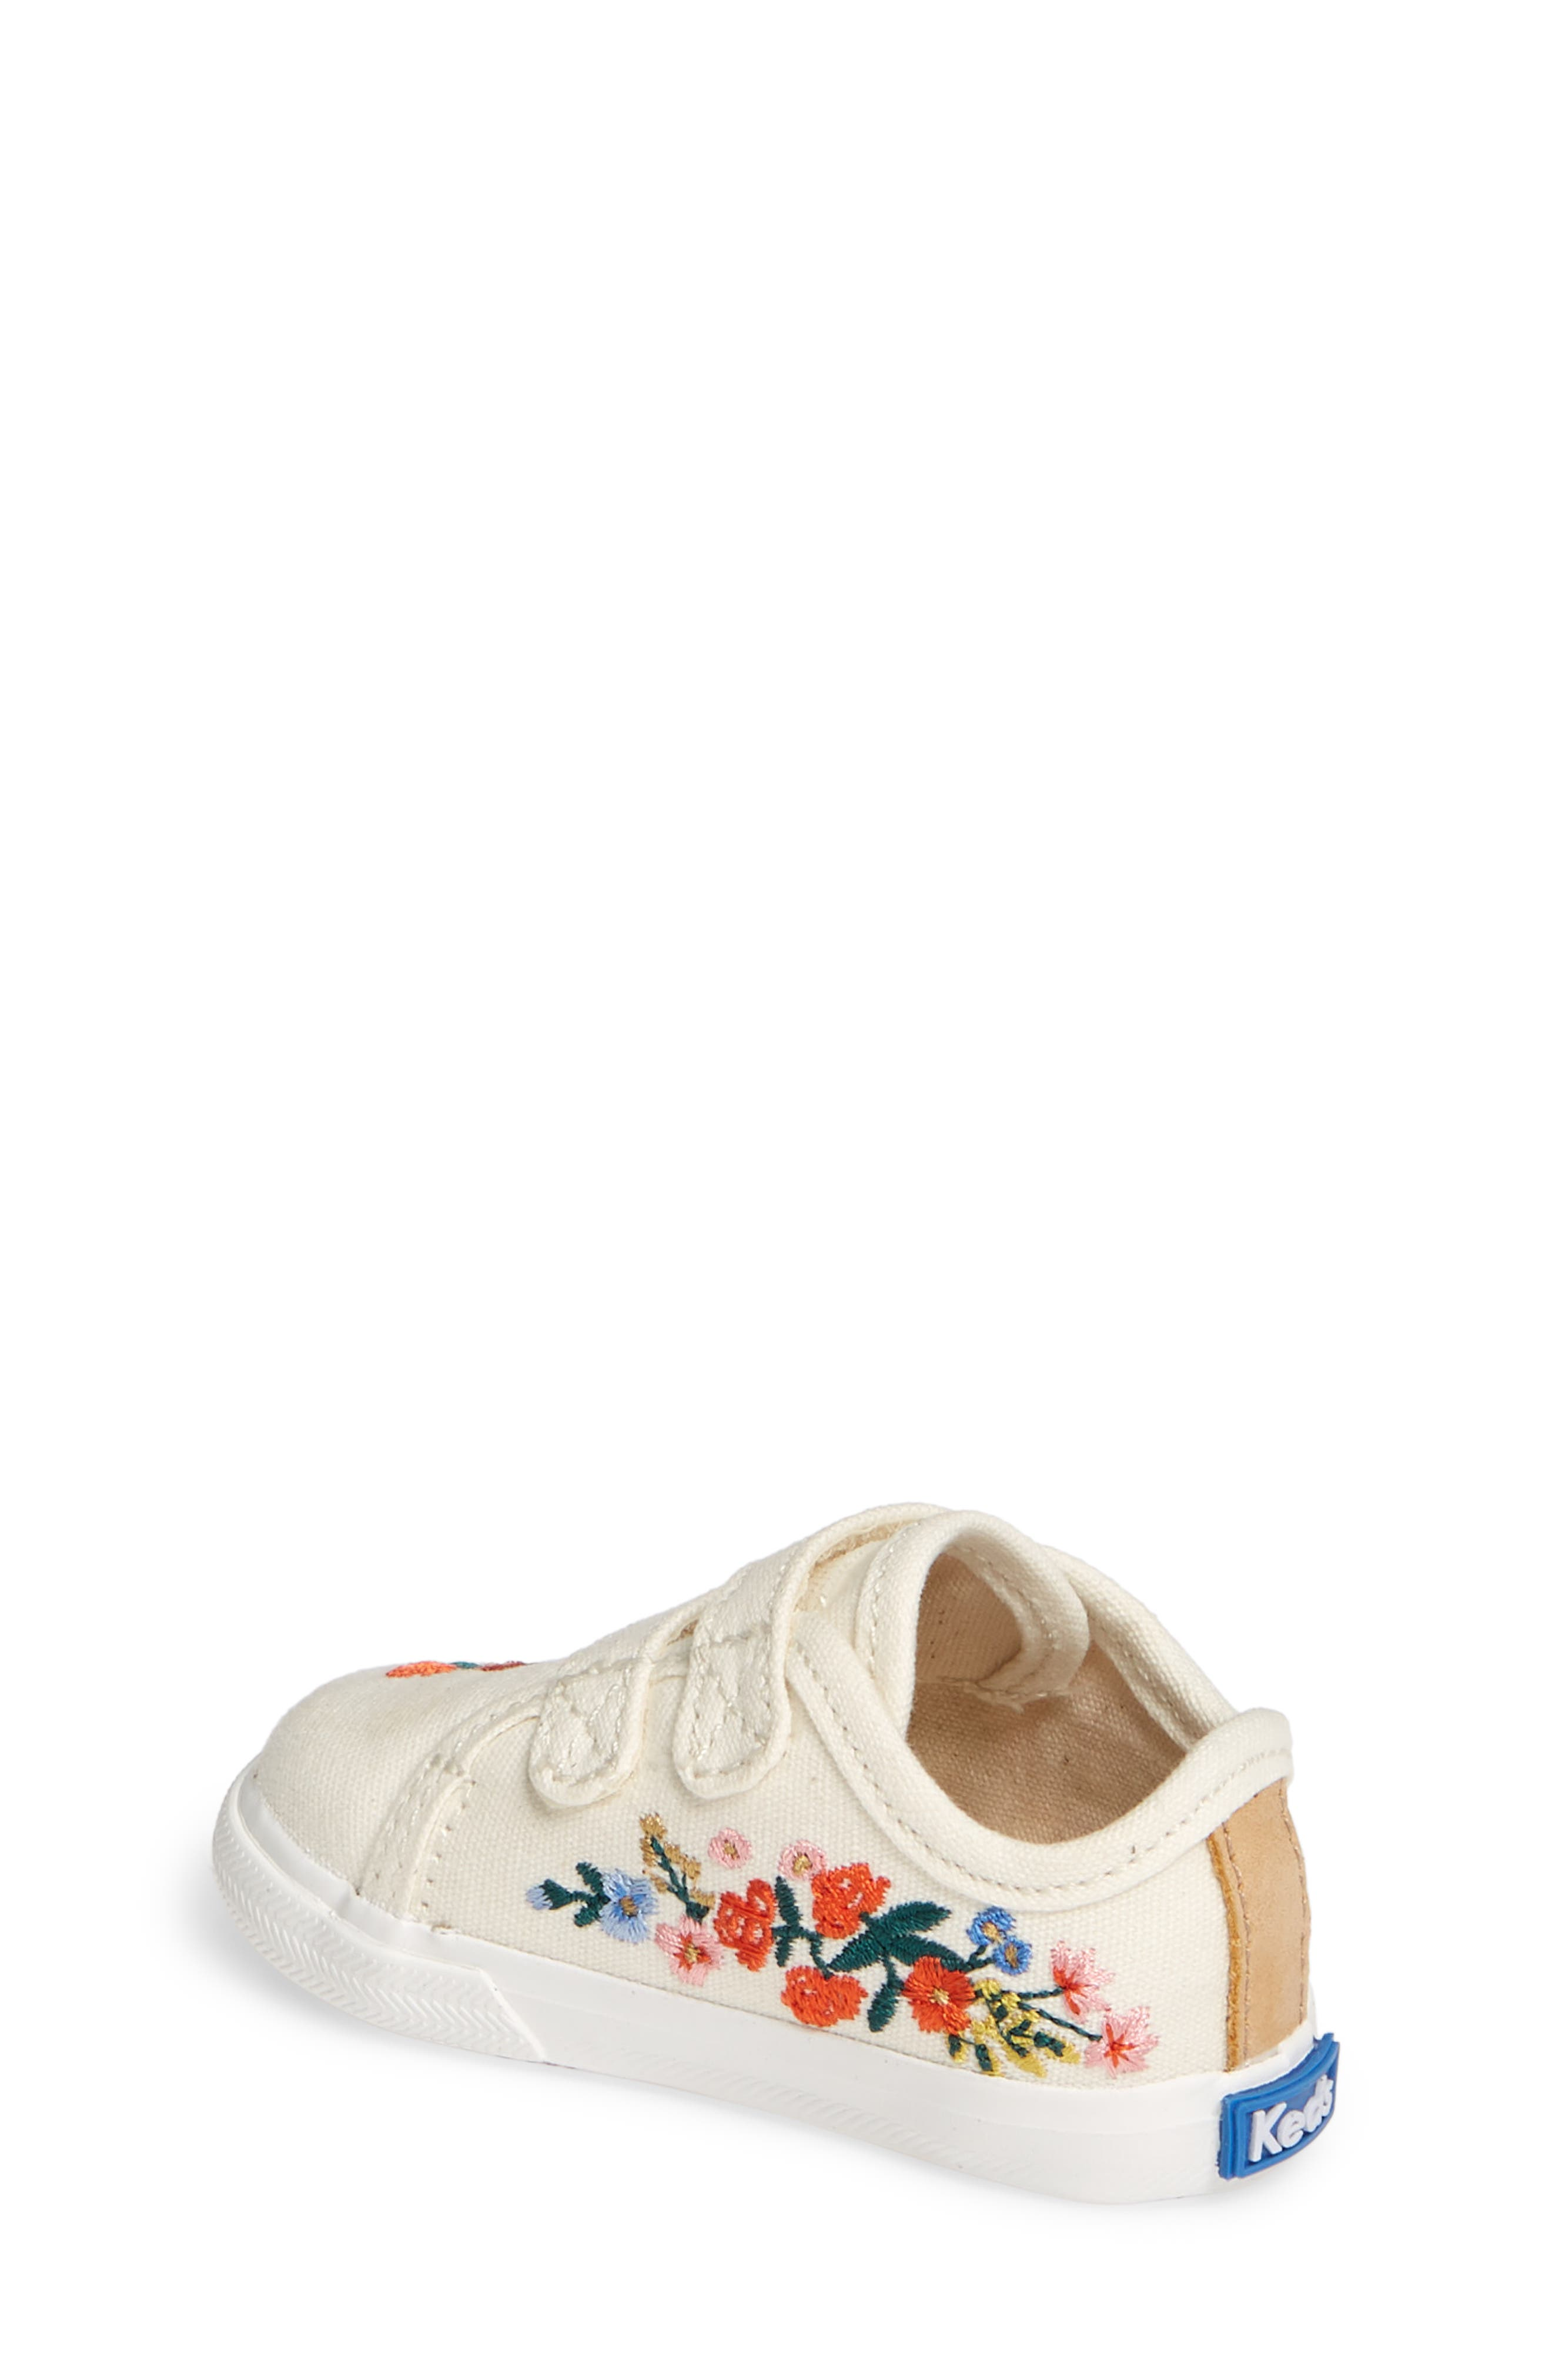 KEDS<SUP>®</SUP>, x Rifle Paper Co. Double Up Crib Shoe, Alternate thumbnail 2, color, VINES